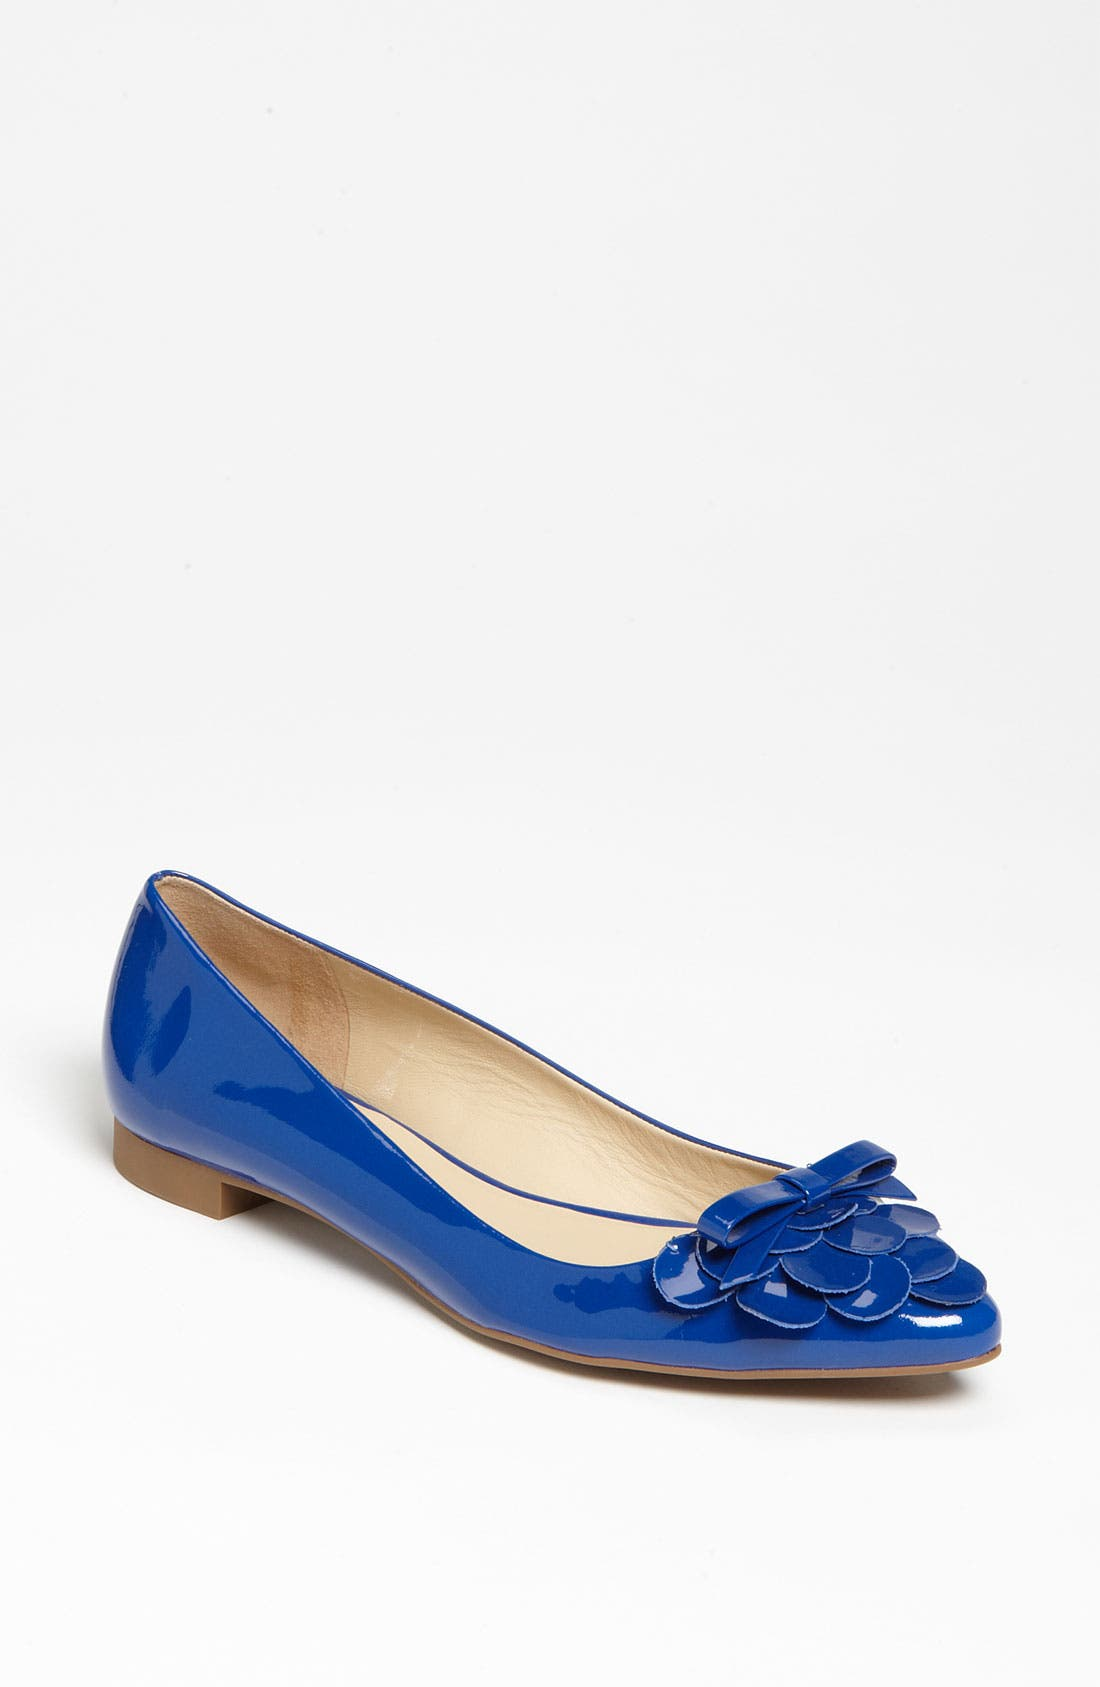 Main Image - kate spade new york 'erica' flat